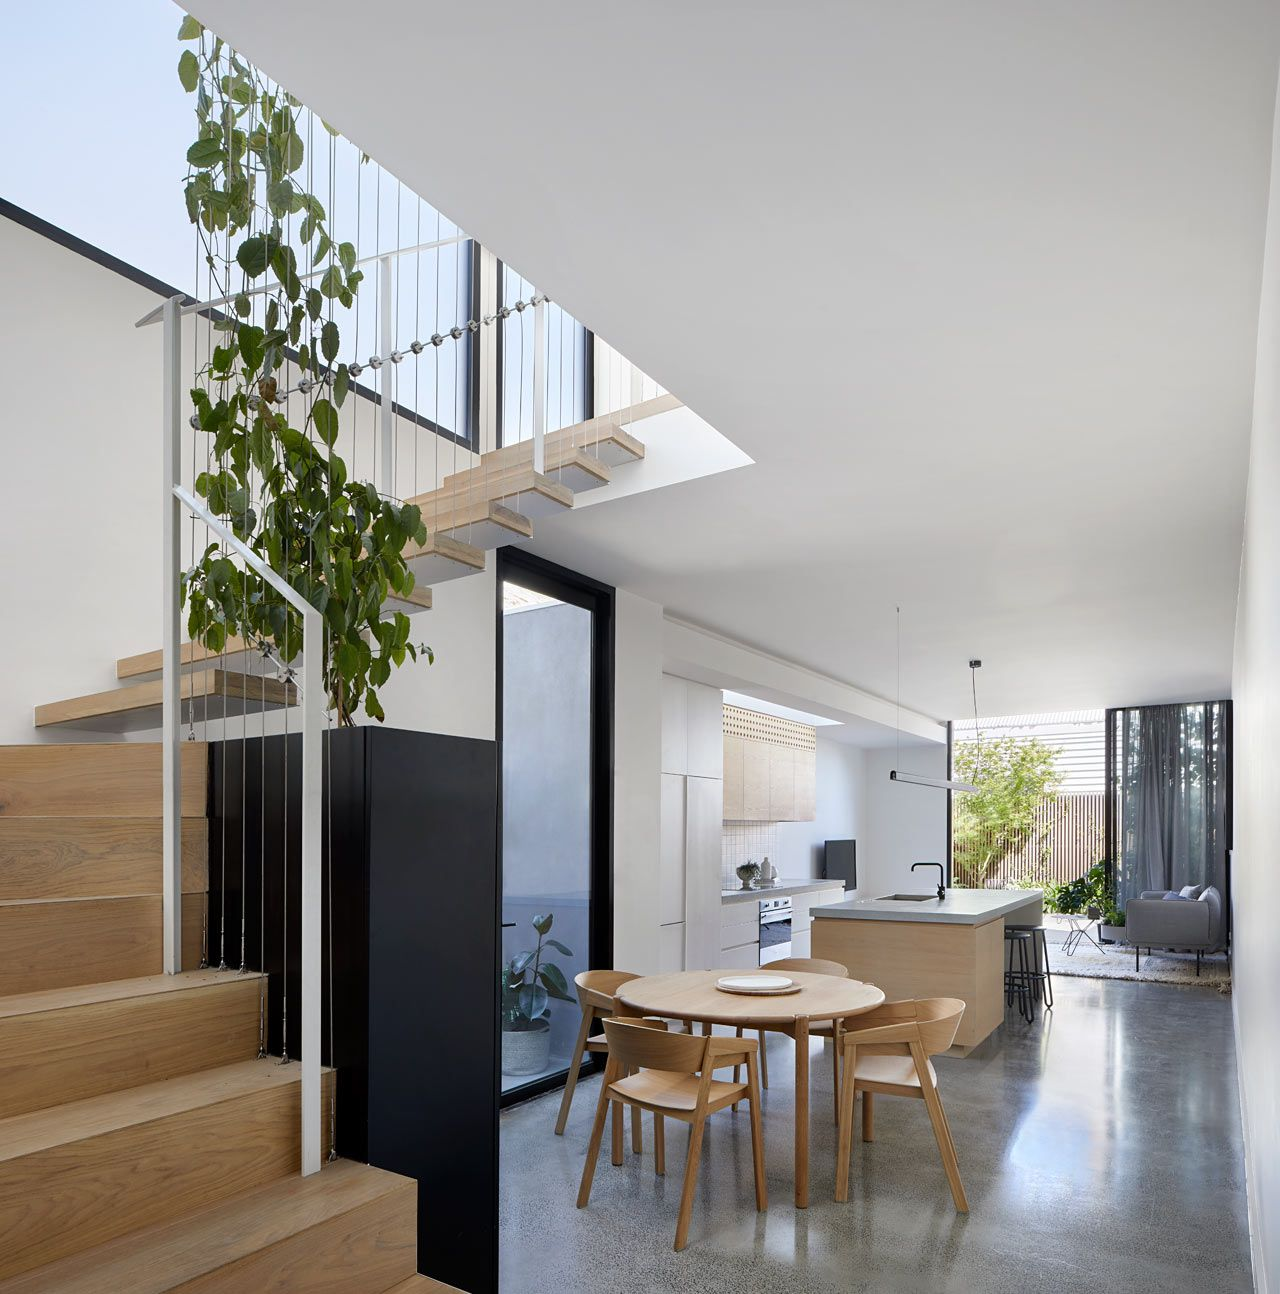 10 Small House Interior Design Solutions: A Modern Addition To A Workers' Cottage In Melbourne